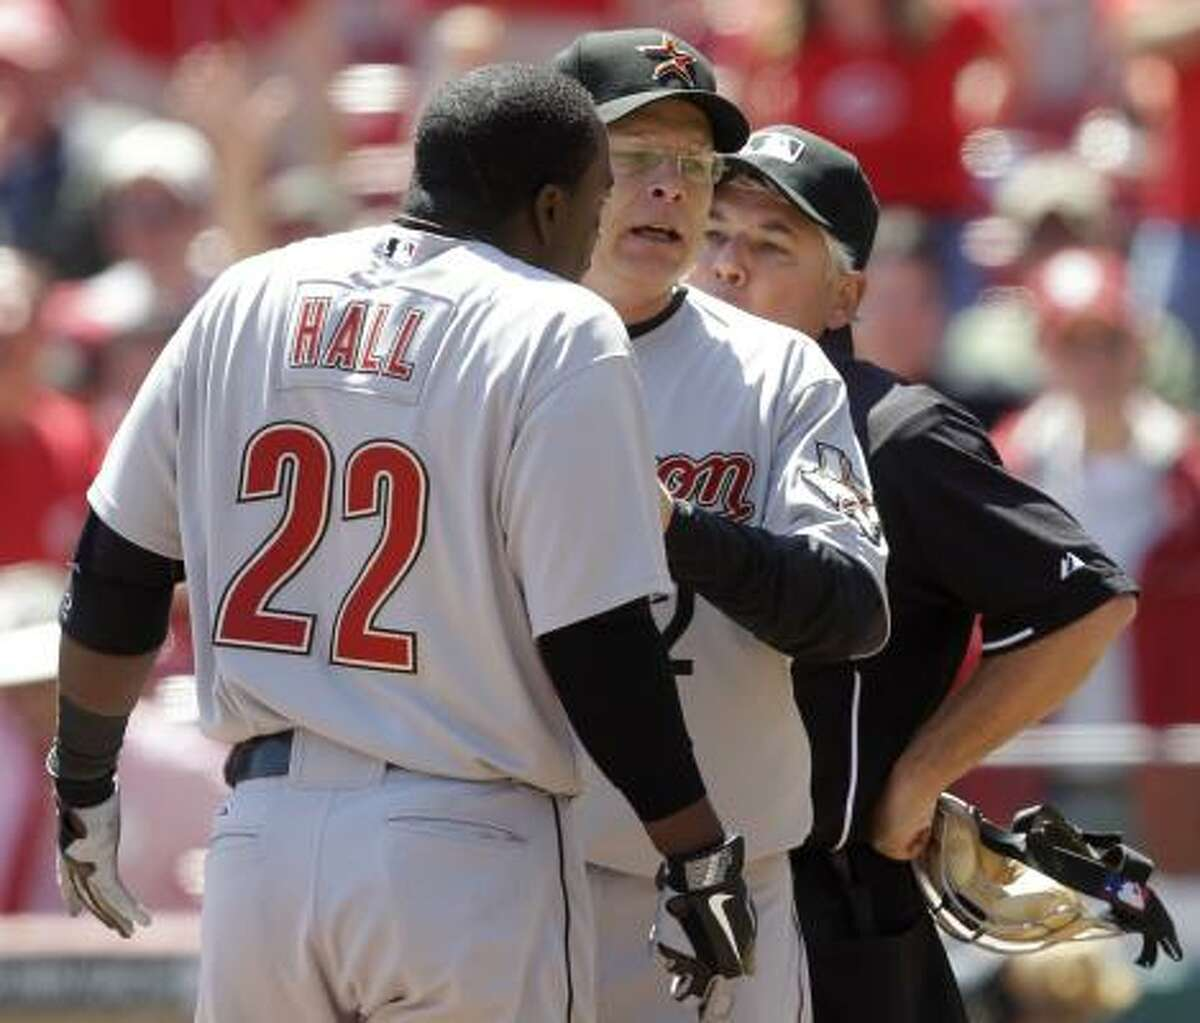 May 5: Reds 10, Astros 4 Astros' manager Brad Mills separates Bill Hall from home plate umpire Tom Hallion after Hallion had ejected Hall for arguing a third strike in the seventh inning on a forgettable day for the Astros. Hall had some choice words about the state of umpiring after the game.